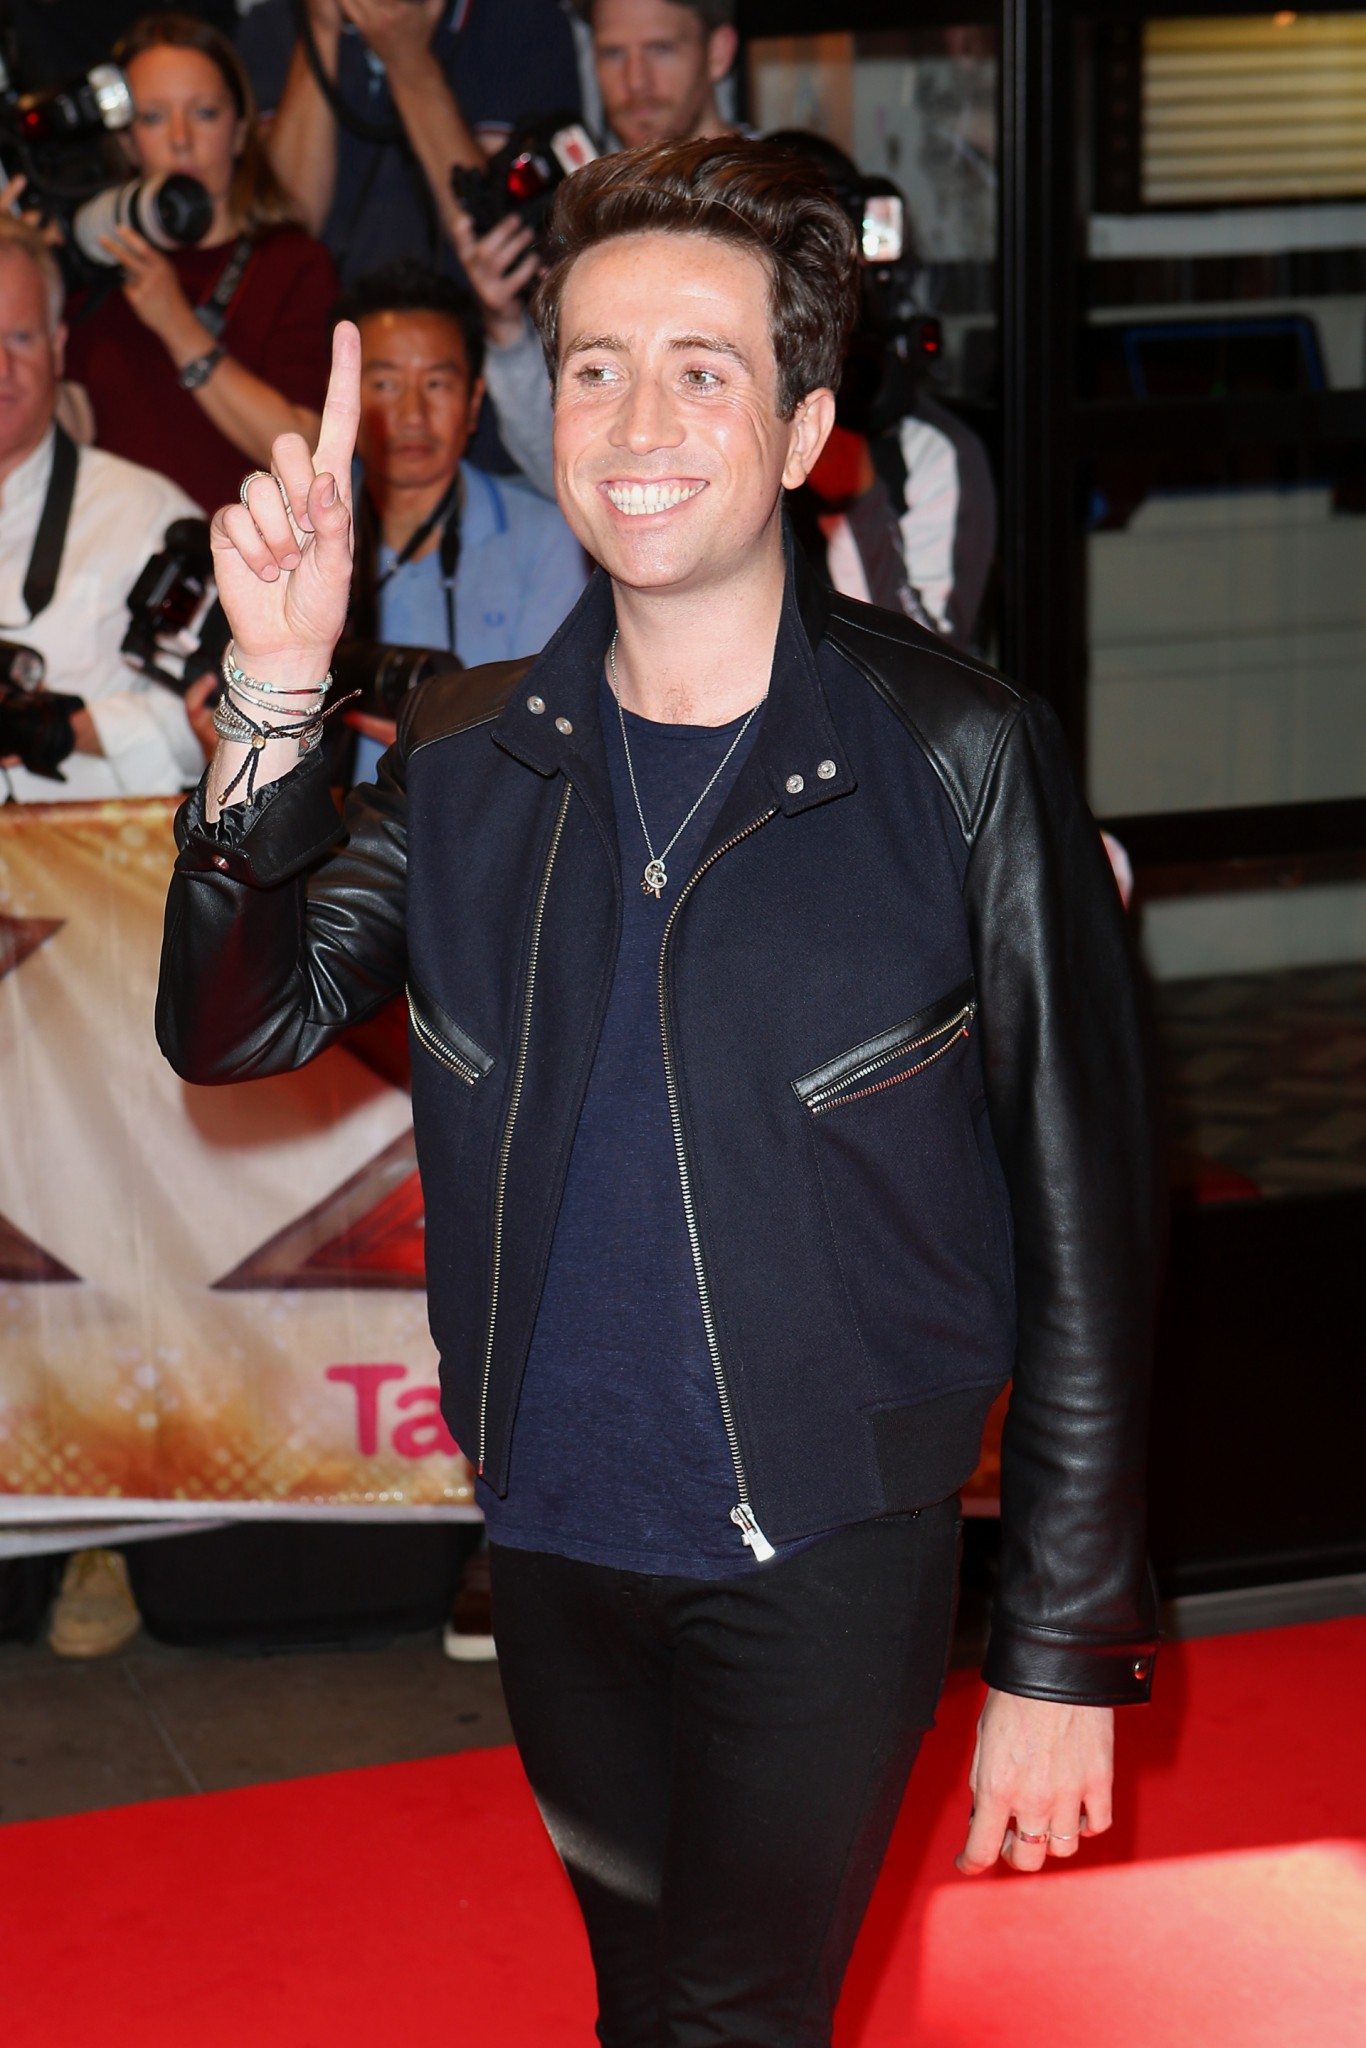 Nick Grimshaw on the red carpet at X Factor launch